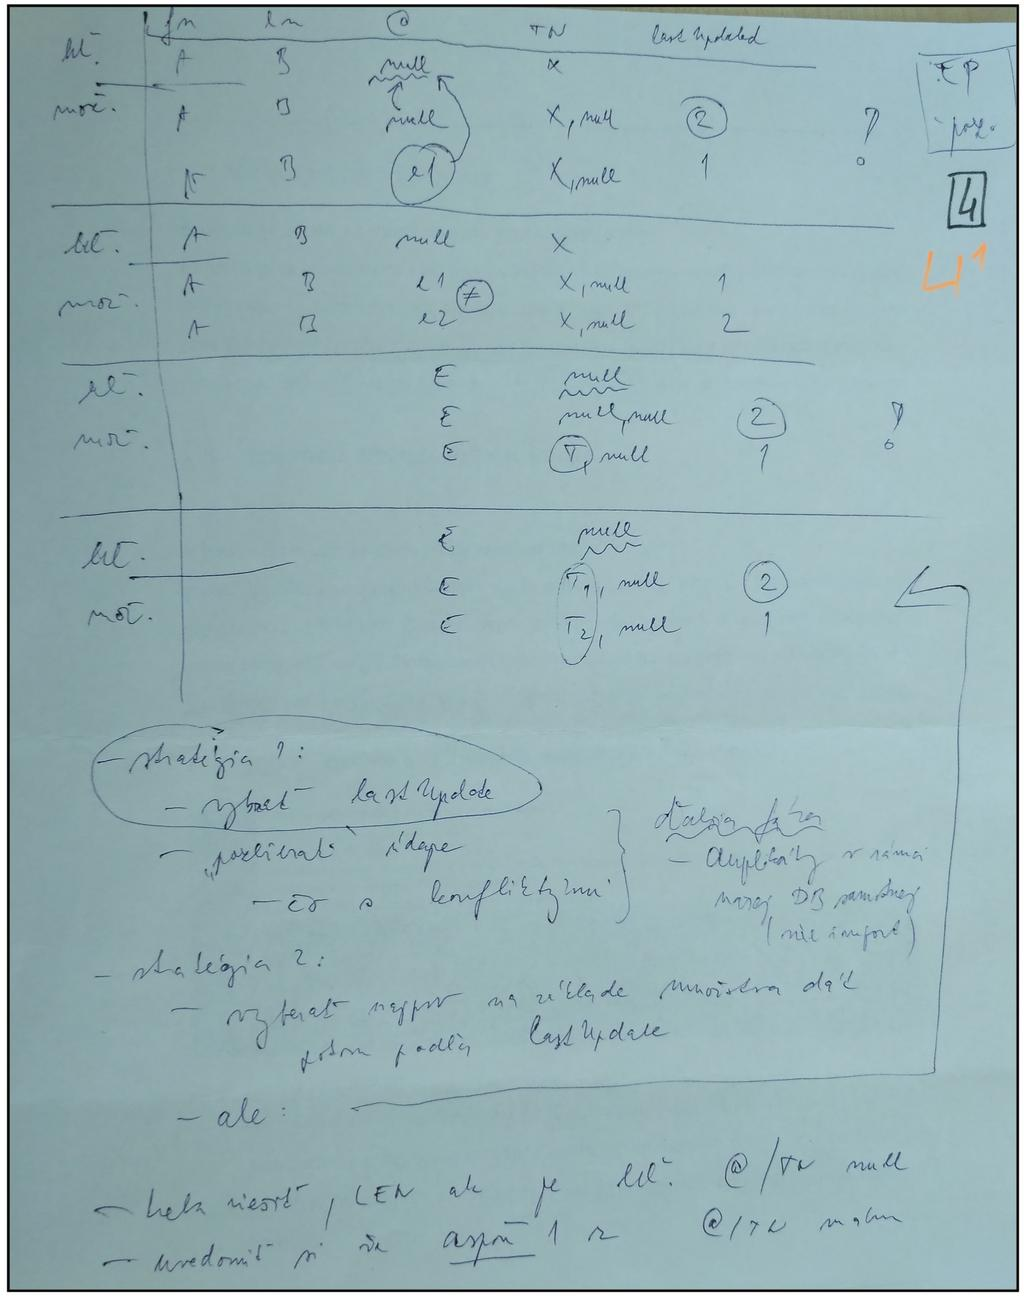 6th Symposium On Languages Applications And Technologies Pdf Visualization Modeling Sdk Circuit Diagrams Extensive Dsl 46 Towards Employing Informal Sketches In Software Development Figure 2 Sketch